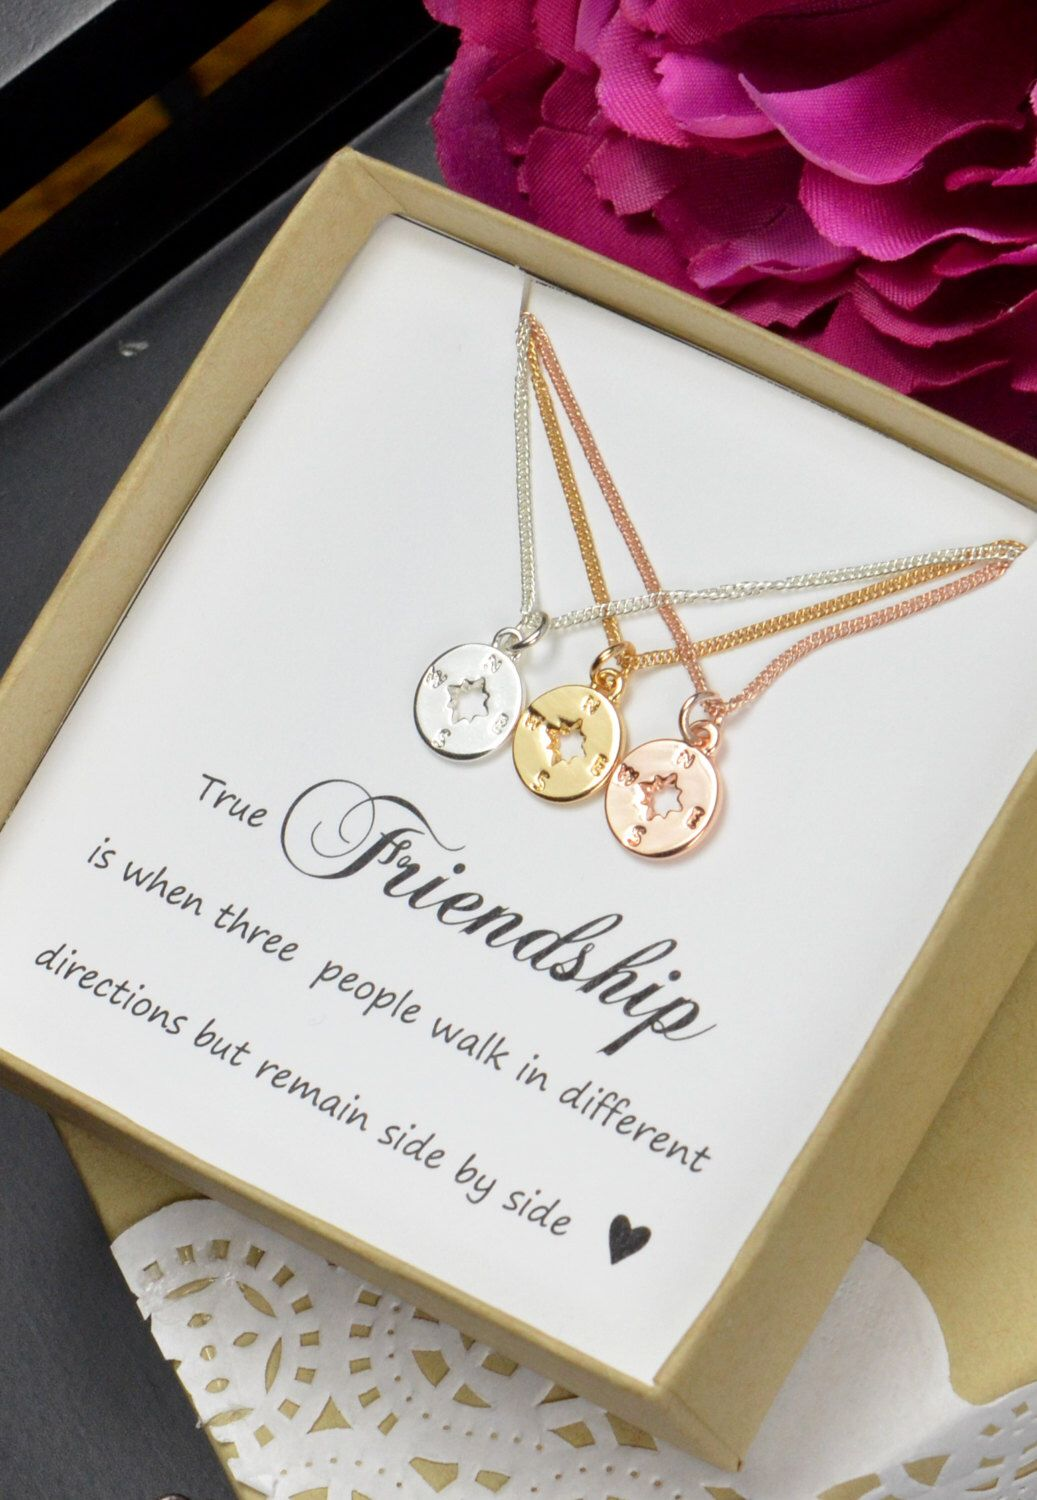 Best Friend Gift,Rose gold Compass Necklace,Best Friend Necklace,Friendship Necklace,BFF Gift,Friendship Gift,compass jewelry,compass charm by DianaDpersonalized on Etsy https://www.etsy.com/listing/489821475/best-friend-giftrose-gold-compass